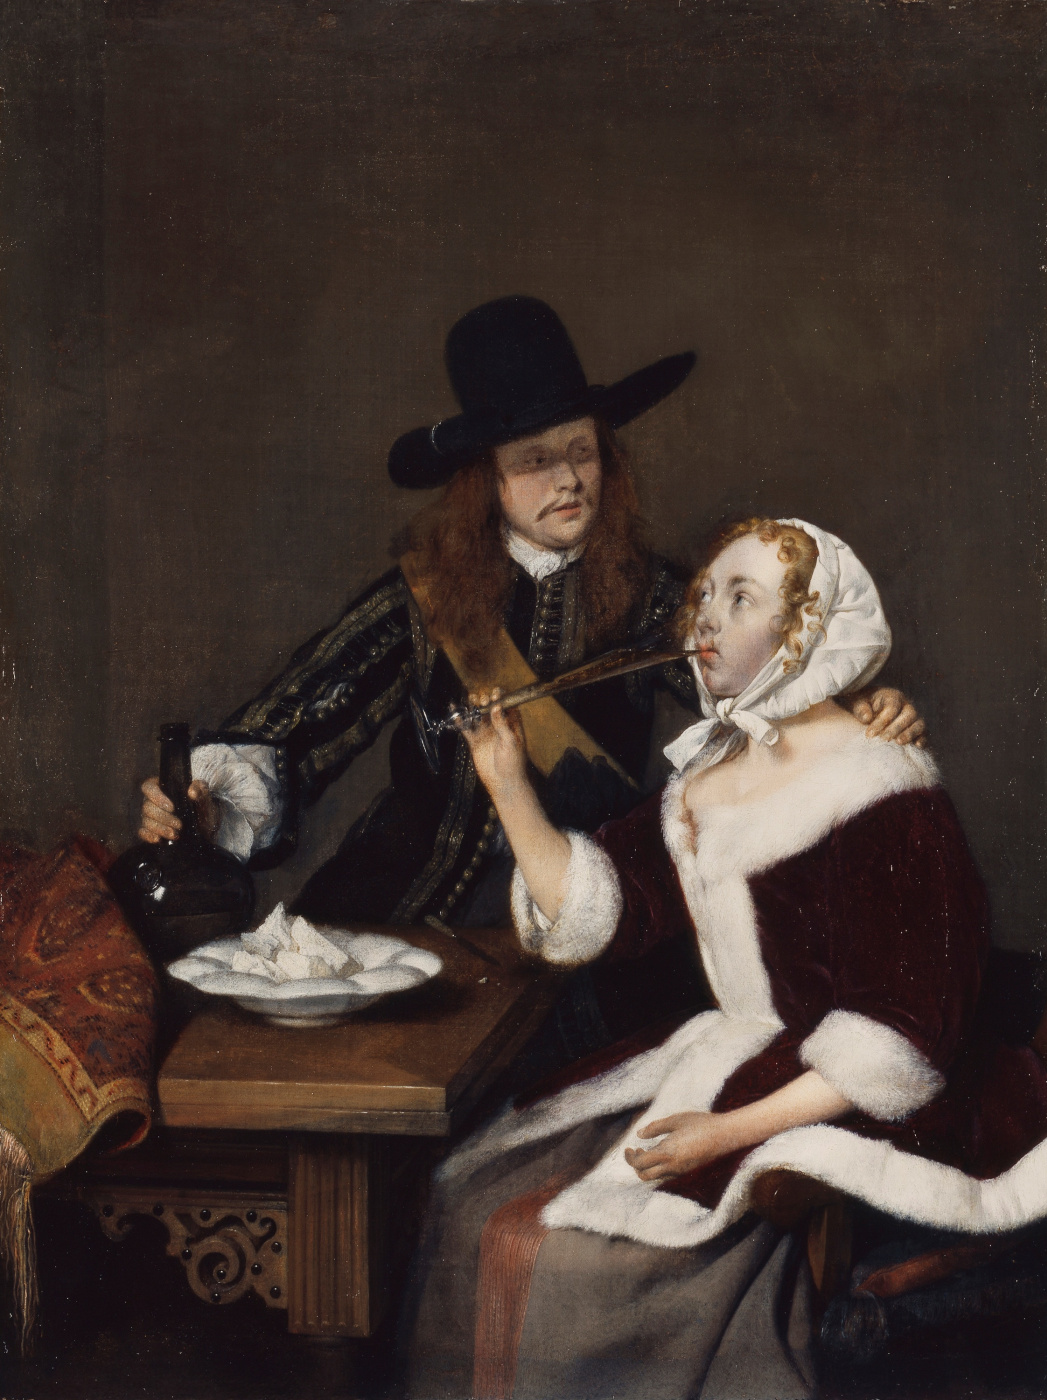 Gerard Terborch (ter Borch). Cavalier forcing the lady to drink